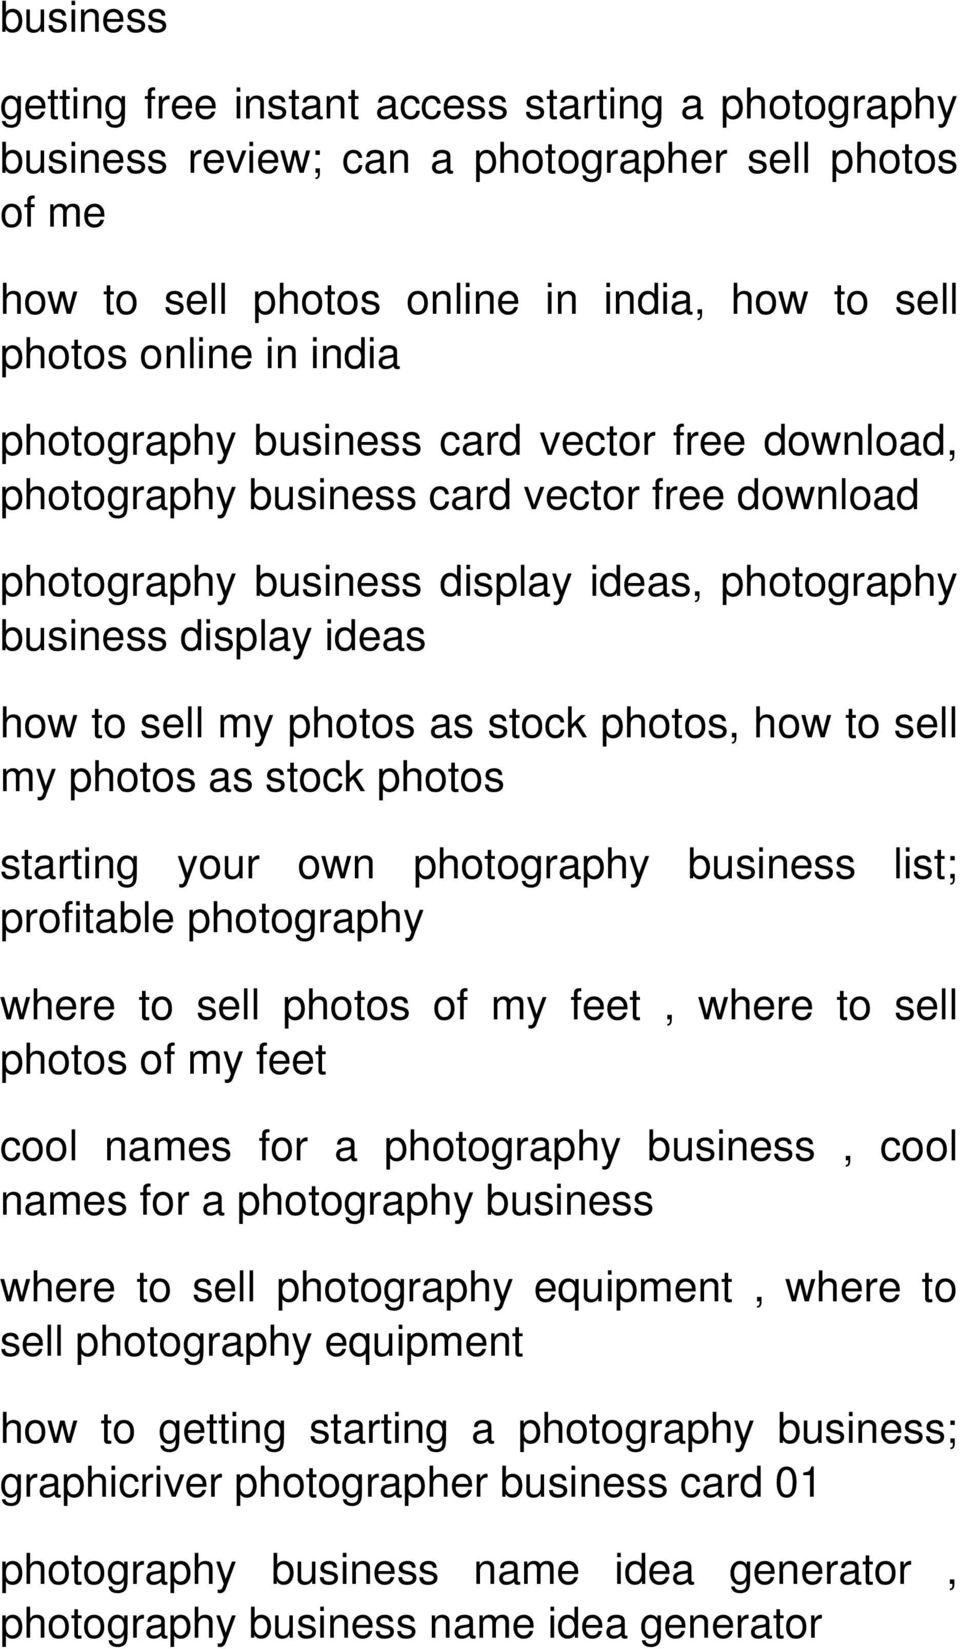 photos as stock photos starting your own list; profitable photography where to sell photos of my feet, where to sell photos of my feet cool names for a, cool names for a